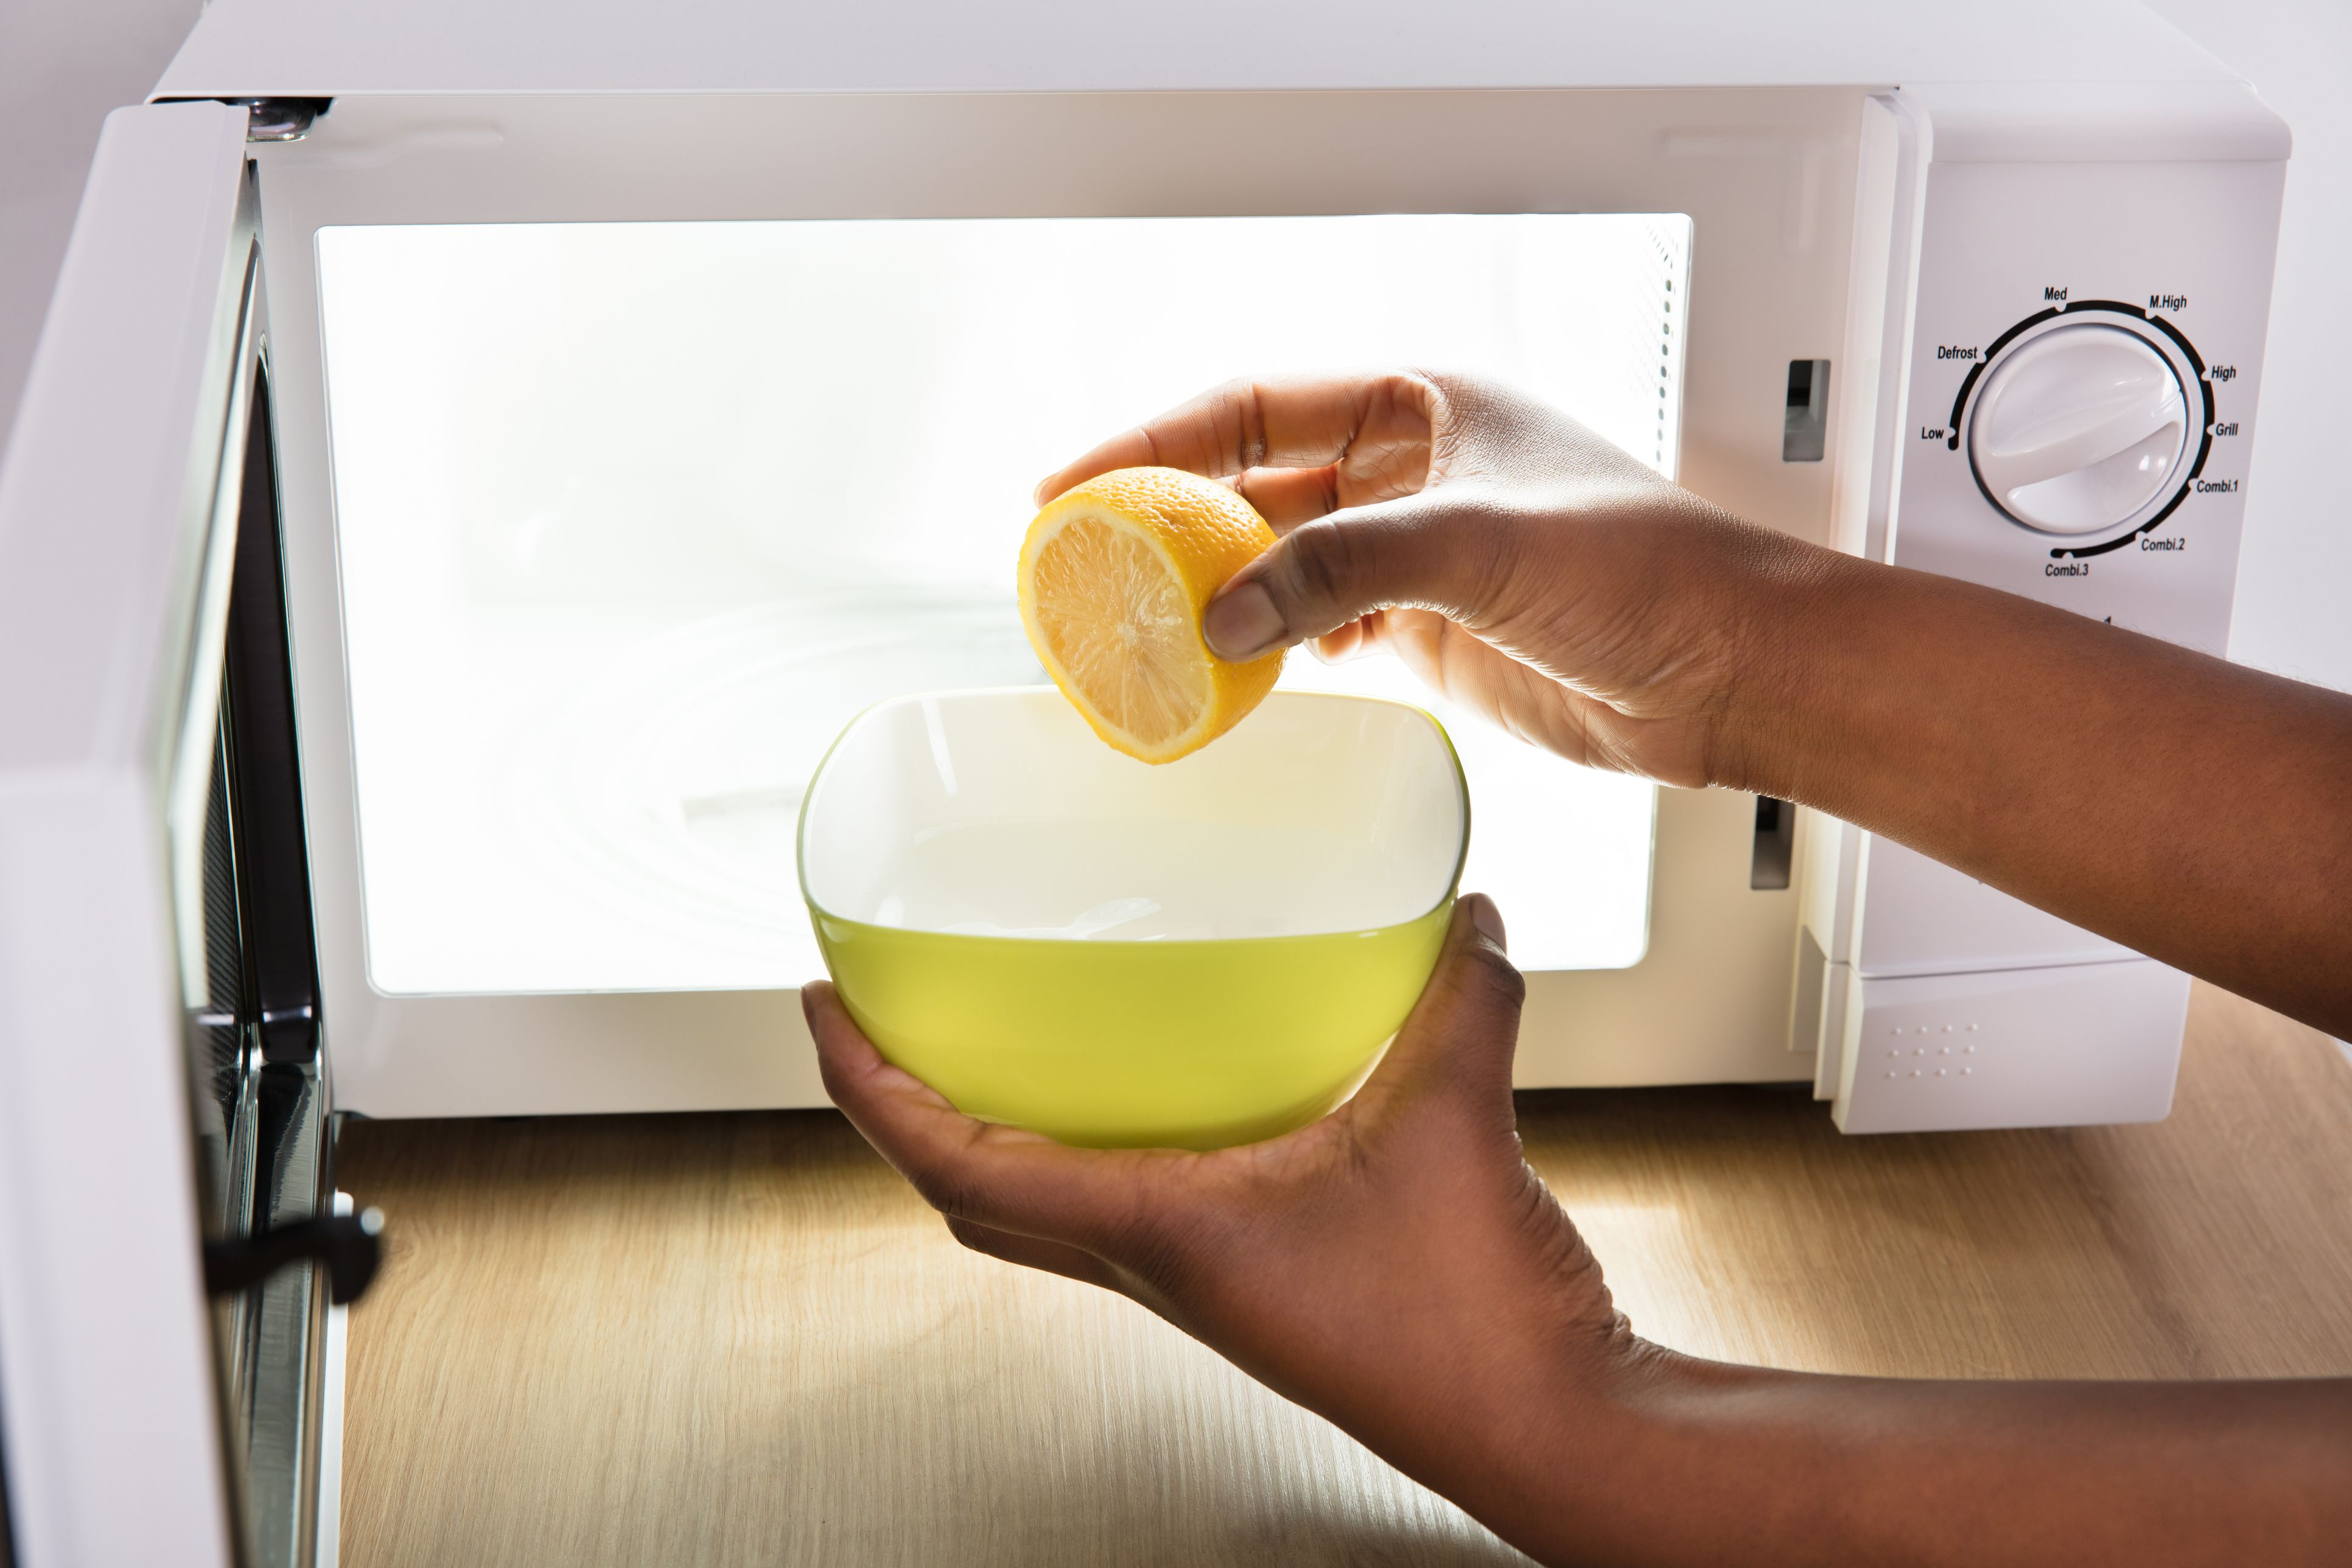 Human Hand Putting Sliced Lemon In Bowl